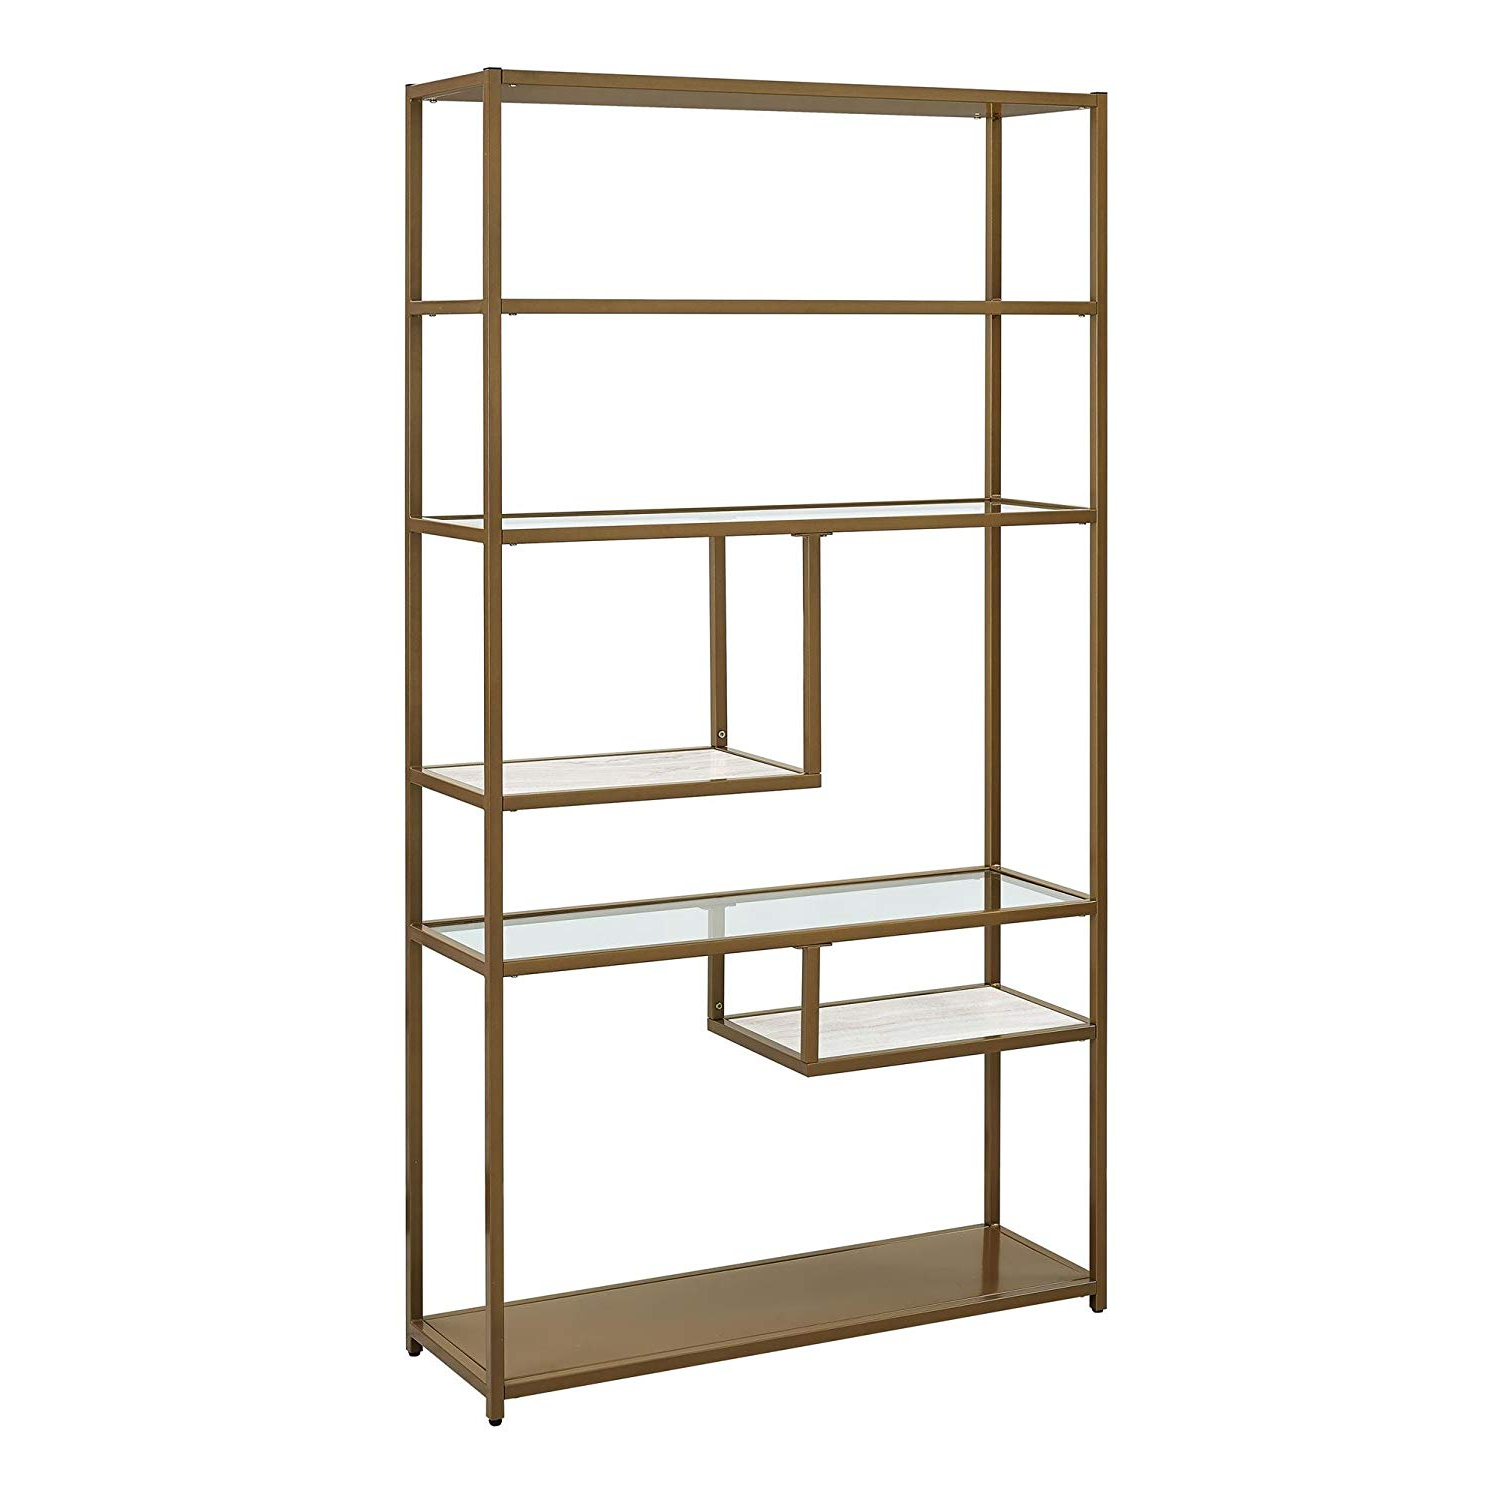 Chrysanthos Etagere Bookcases For 2020 Dorel Living Moriah Geometric Bookcase Etagere, Soft Brass (Gallery 20 of 20)